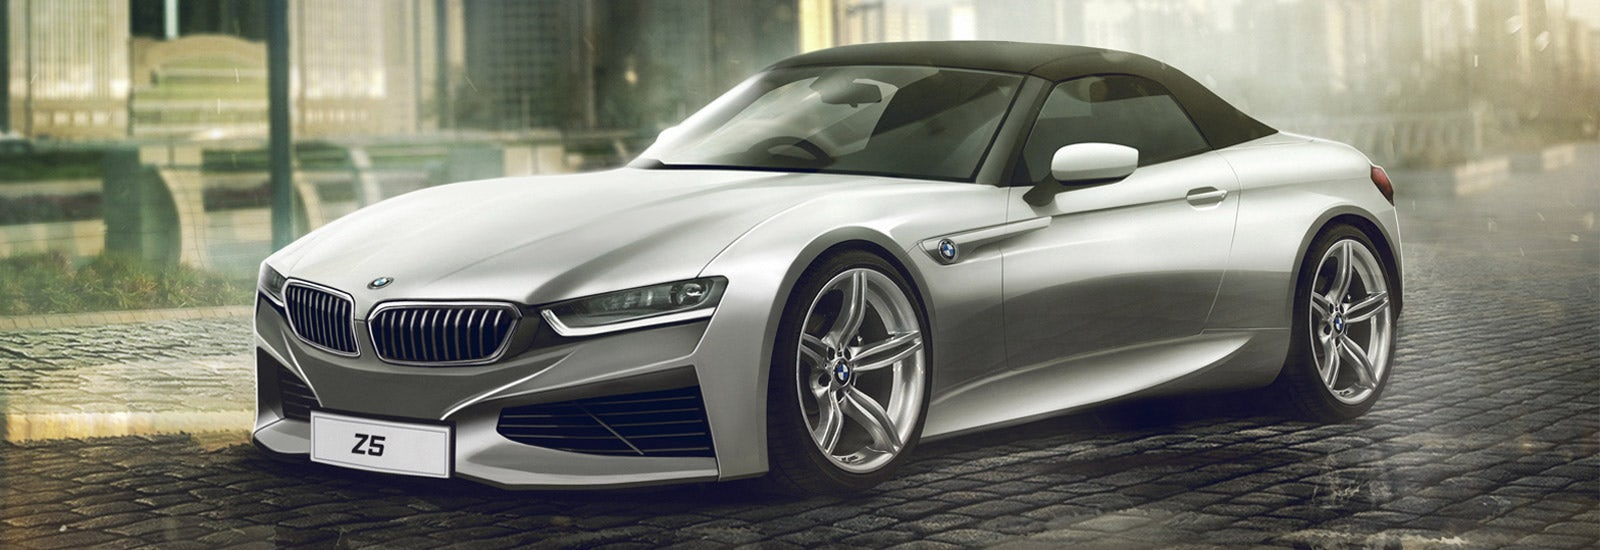 Bmw Z5 Z4 Replacement Price Specs Amp Release Date Carwow